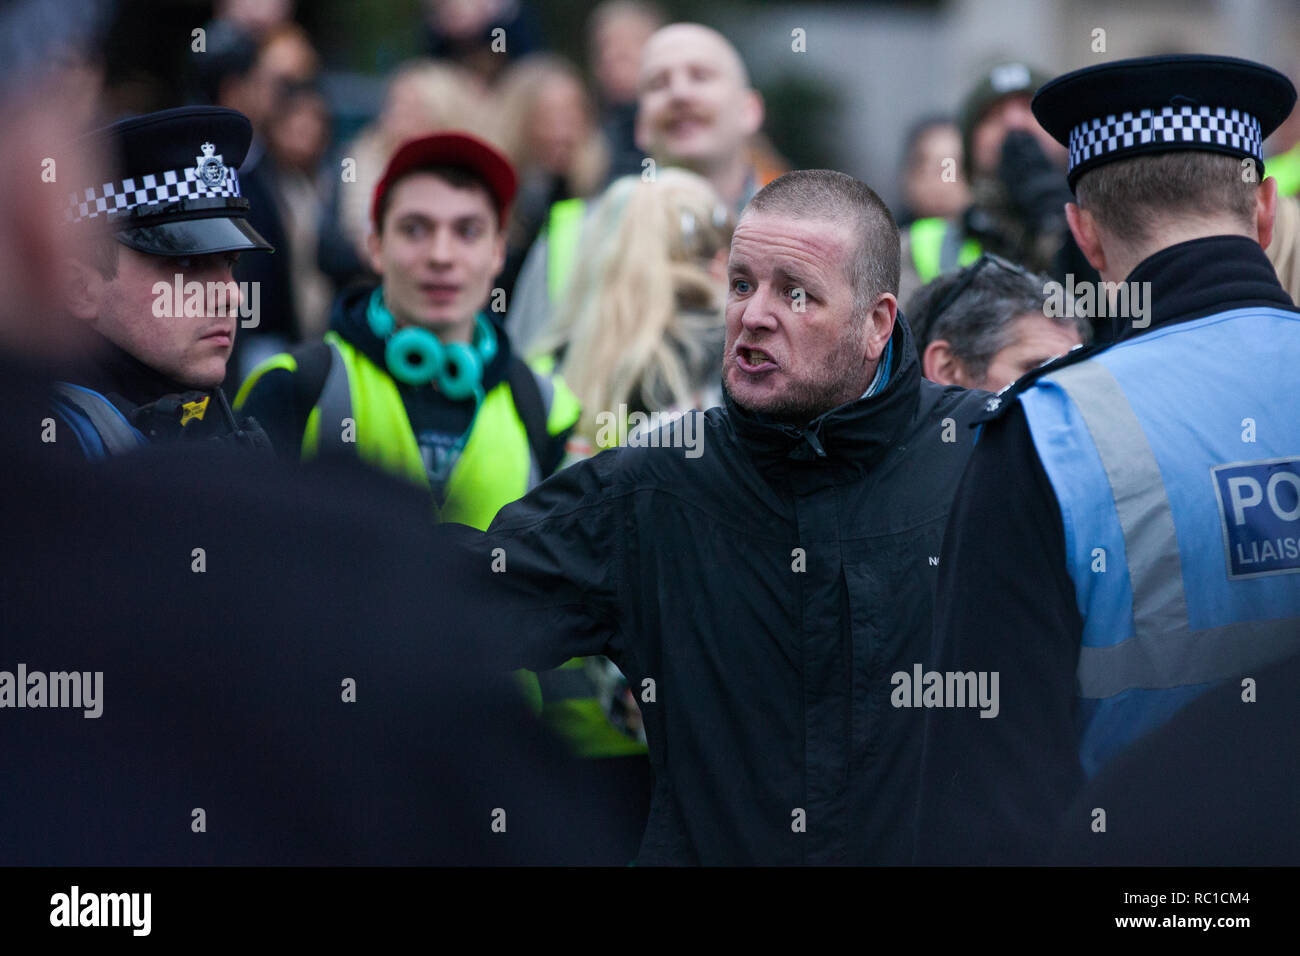 London, UK. 12th January, 2019. Police officers keep order between around fifty supporters of far-right group Liberty Defenders and hundreds of protesters taking part in a 'Britain is Broken: General Election Now' demonstration organised by the People's Assembly Against Austerity. Some members of both groups were wearing yellow vests in solidarity with the 'gilets jaunes' in France. Credit: Mark Kerrison/Alamy Live News - Stock Image